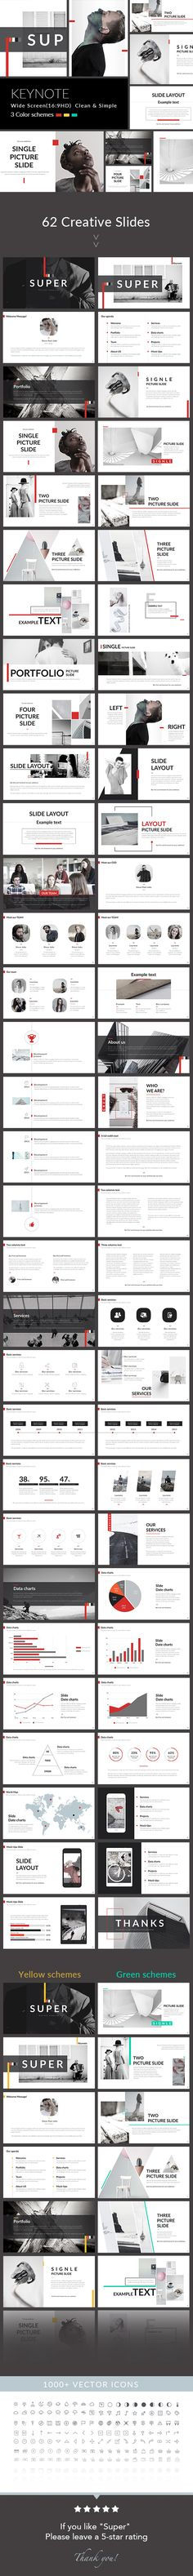 Super - Clean & Simple Keynote Template by General Description Wide Screen Size) Free Font Used 62 unique slides Creative Slides Easy Customize Latest Version of Ui Design, Keynote Design, Slide Design, Brochure Design, Layout Design, Powerpoint Design, Powerpoint Presentation Templates, Keynote Template, Creative Powerpoint